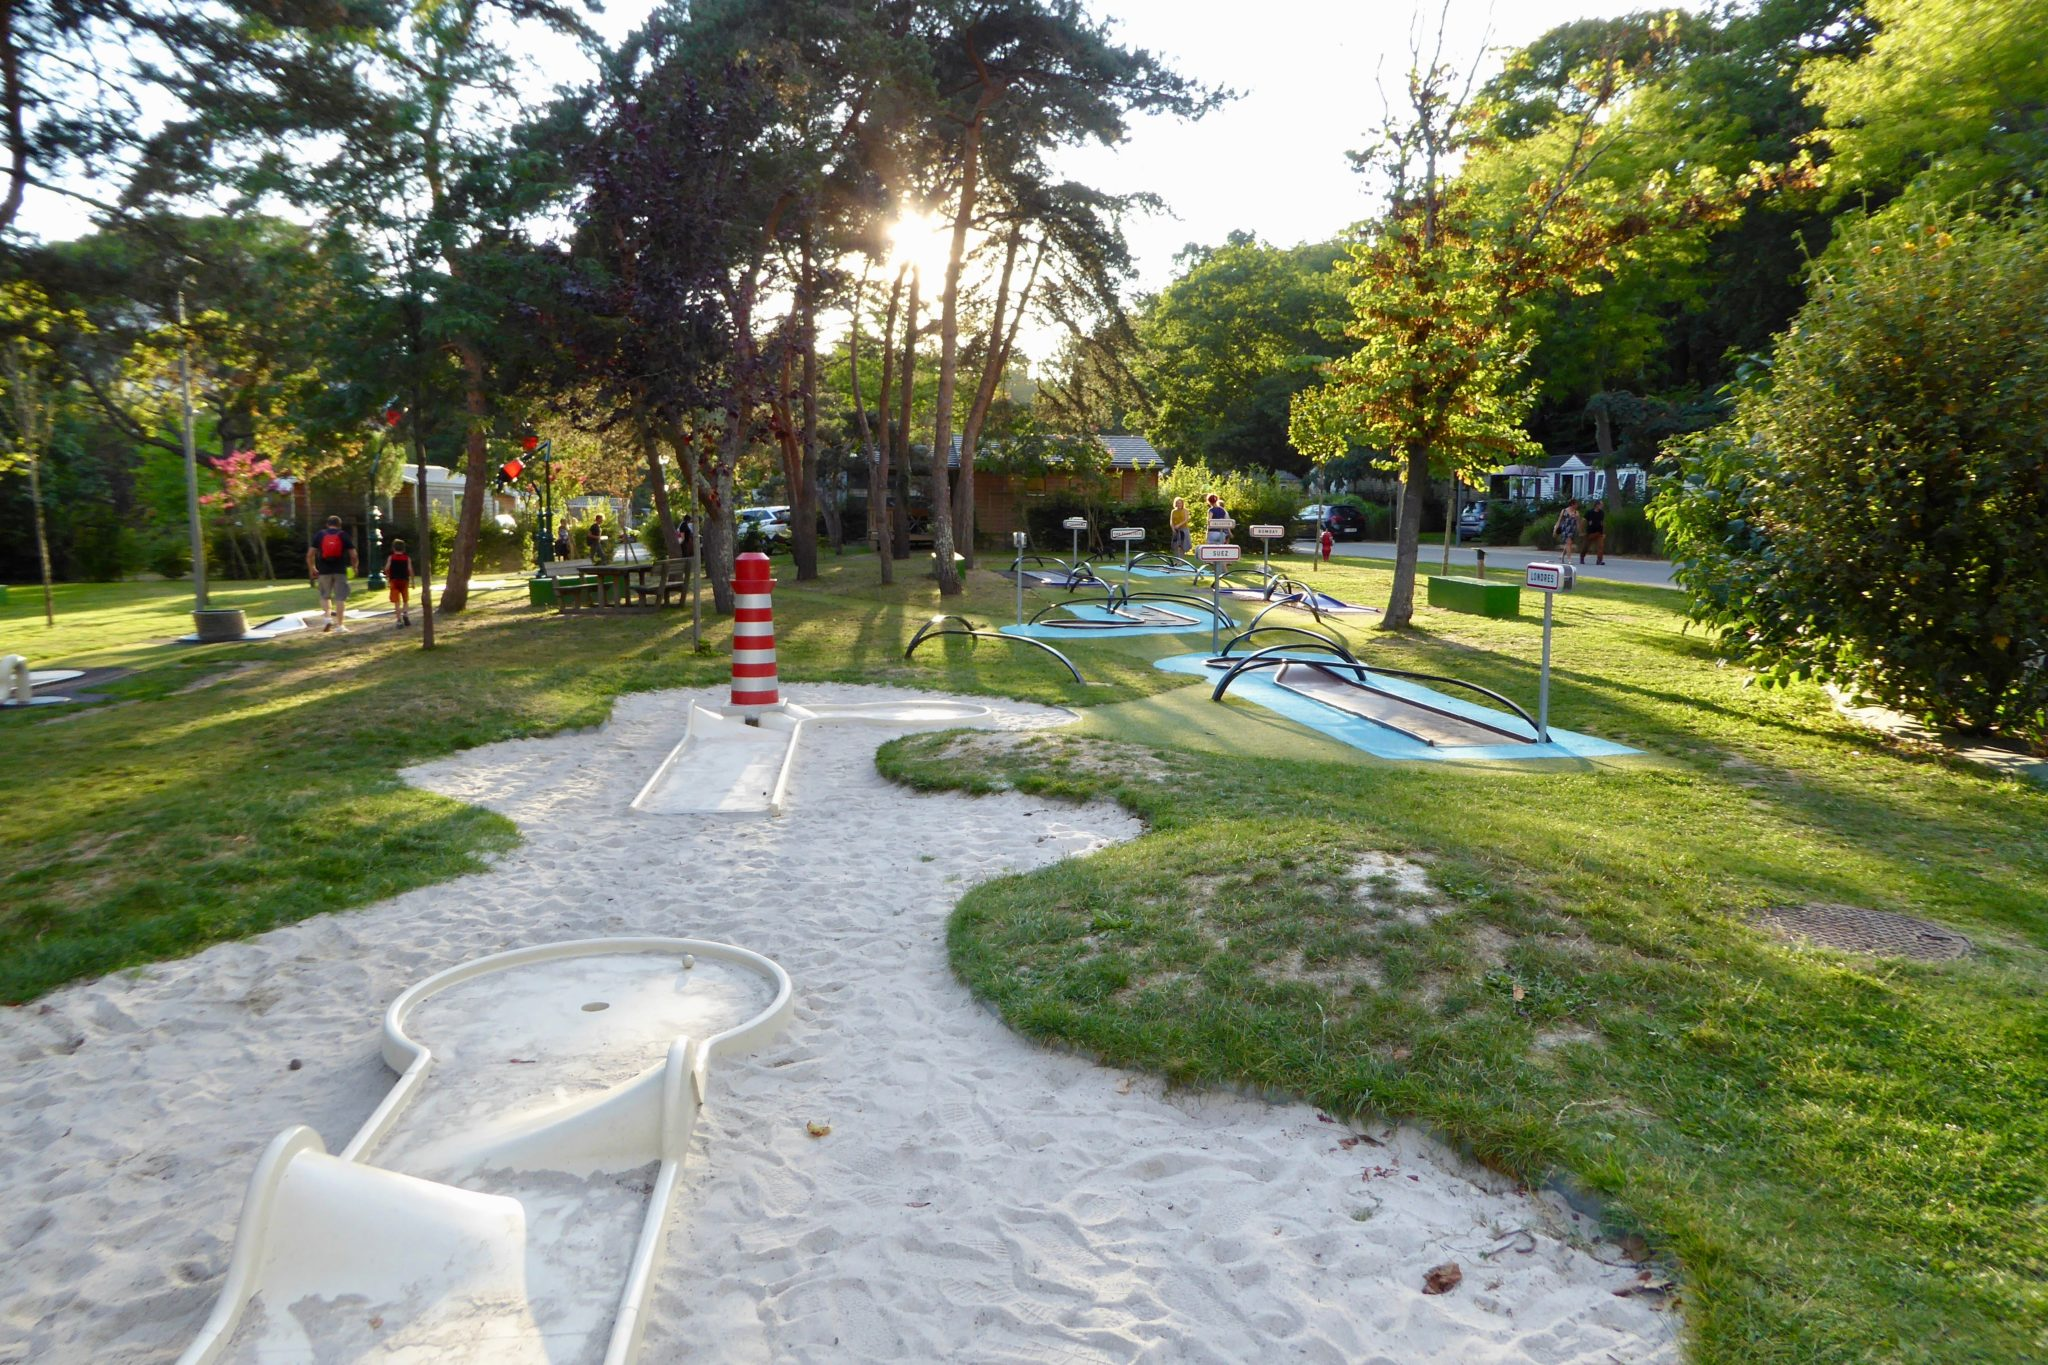 Mini golf Nantes - Review Nantes Camping in Brittany, France